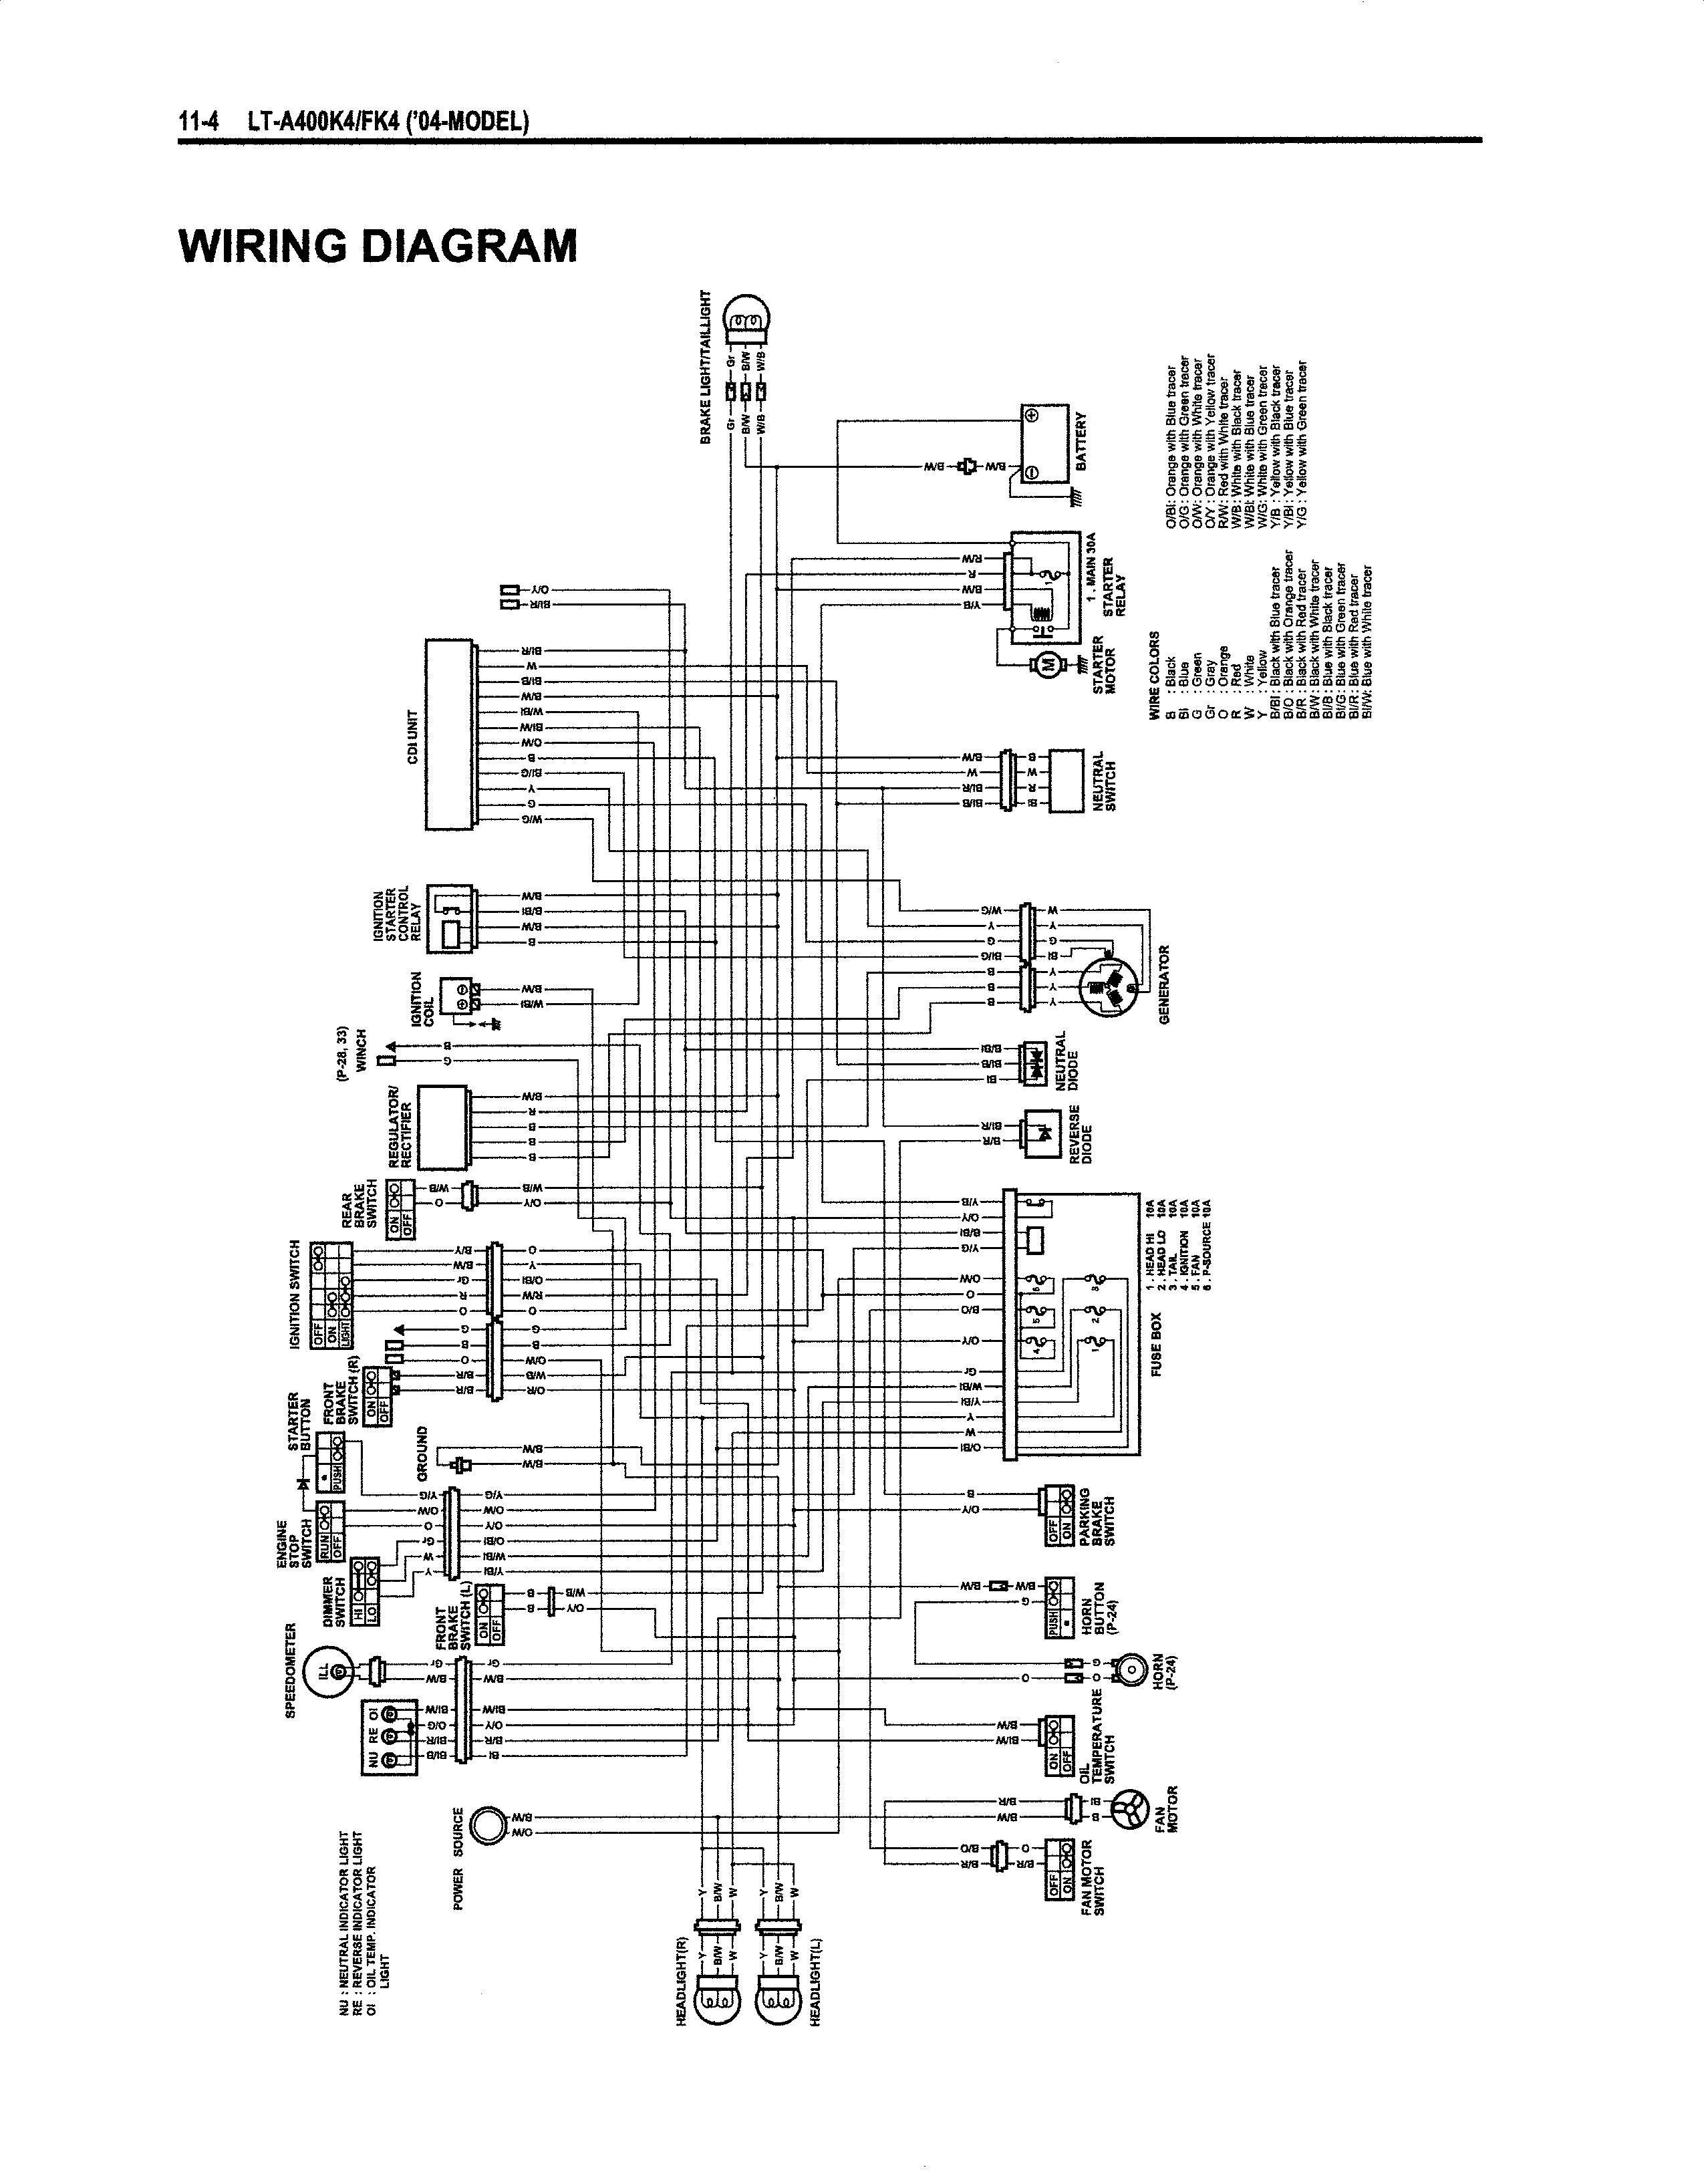 pin yamaha grizzly 600 engine diagram on pinterest wiring diagram 2000 yamaha grizzly 600 wiring diagram [ 2550 x 3268 Pixel ]